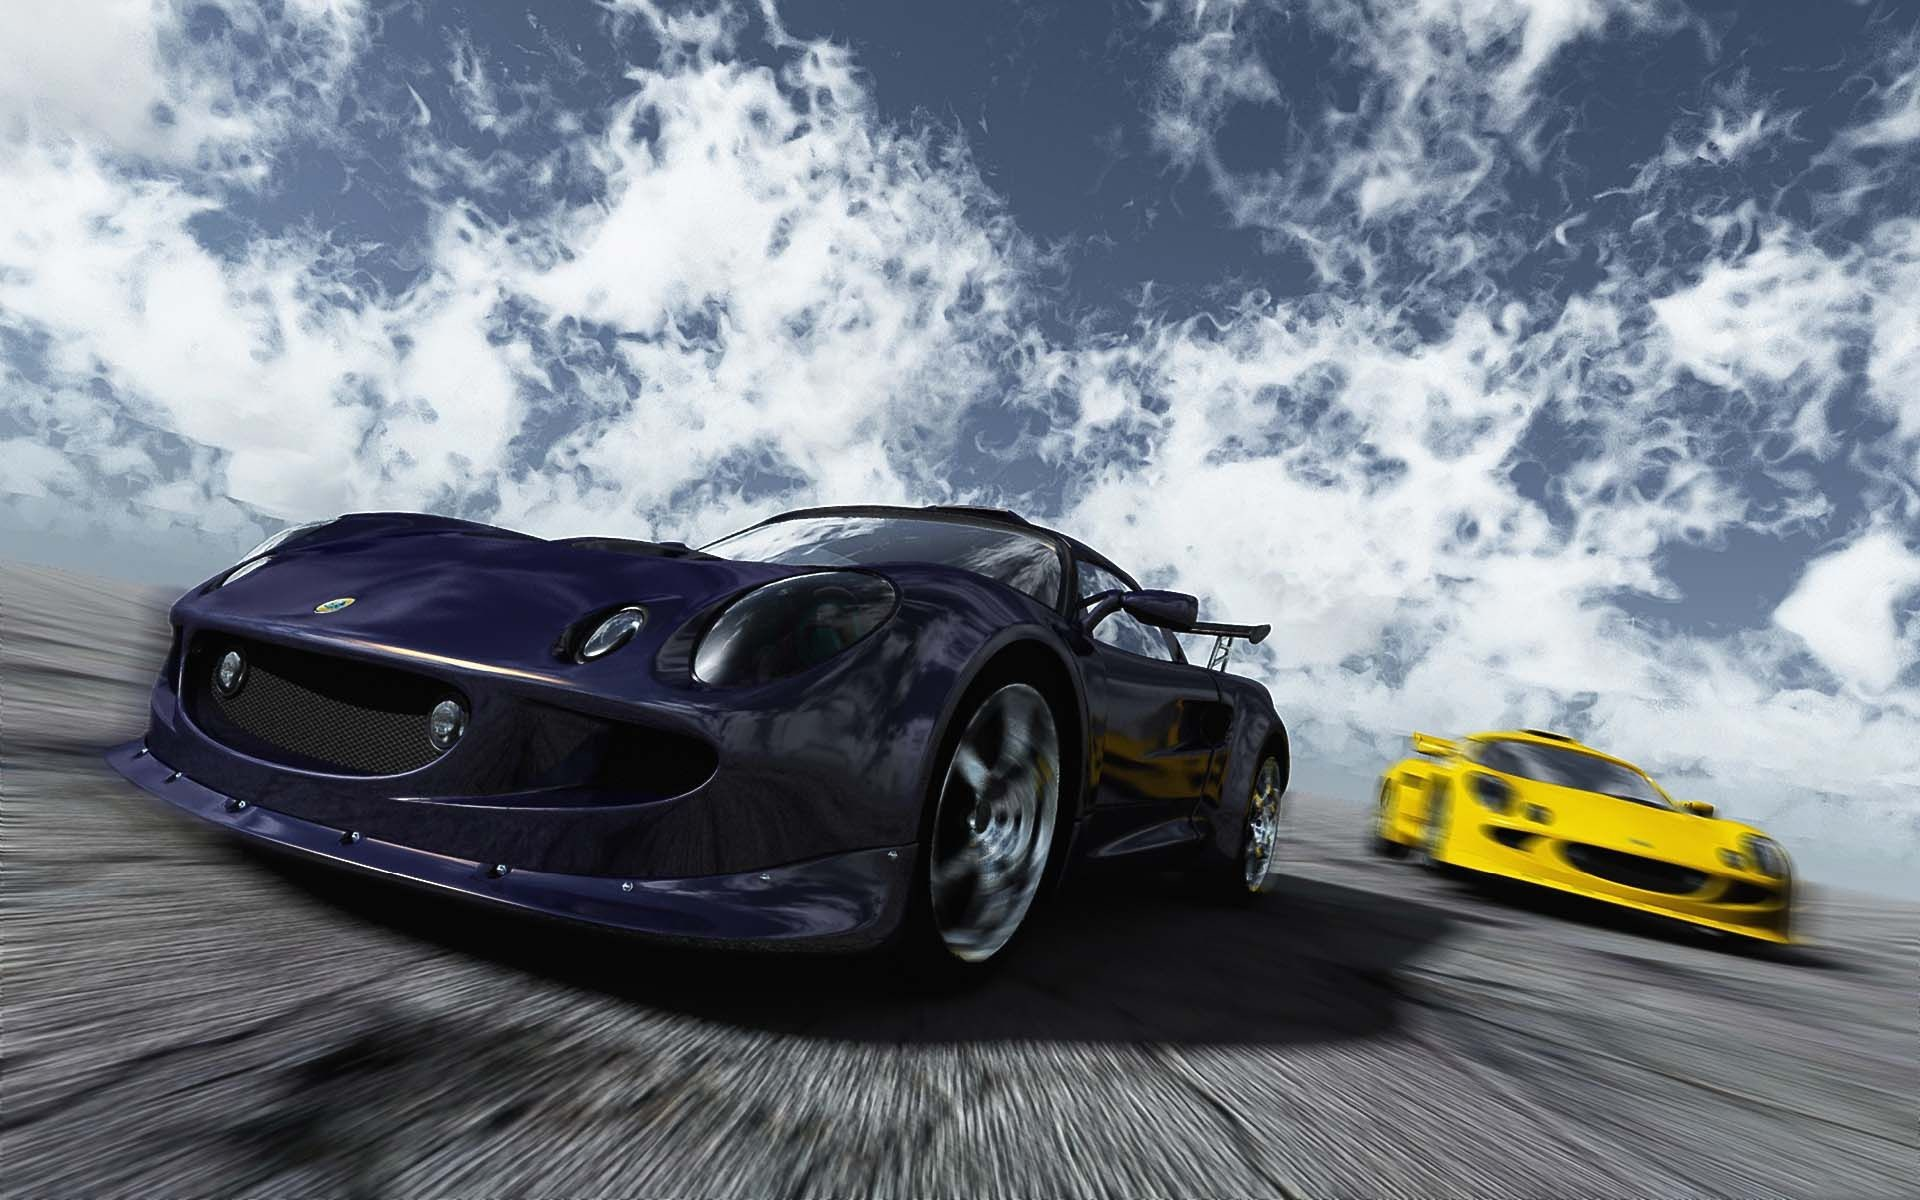 Res: 1920x1200, Racing Car In Action   HD Other Cars Wallpaper Free Download ...